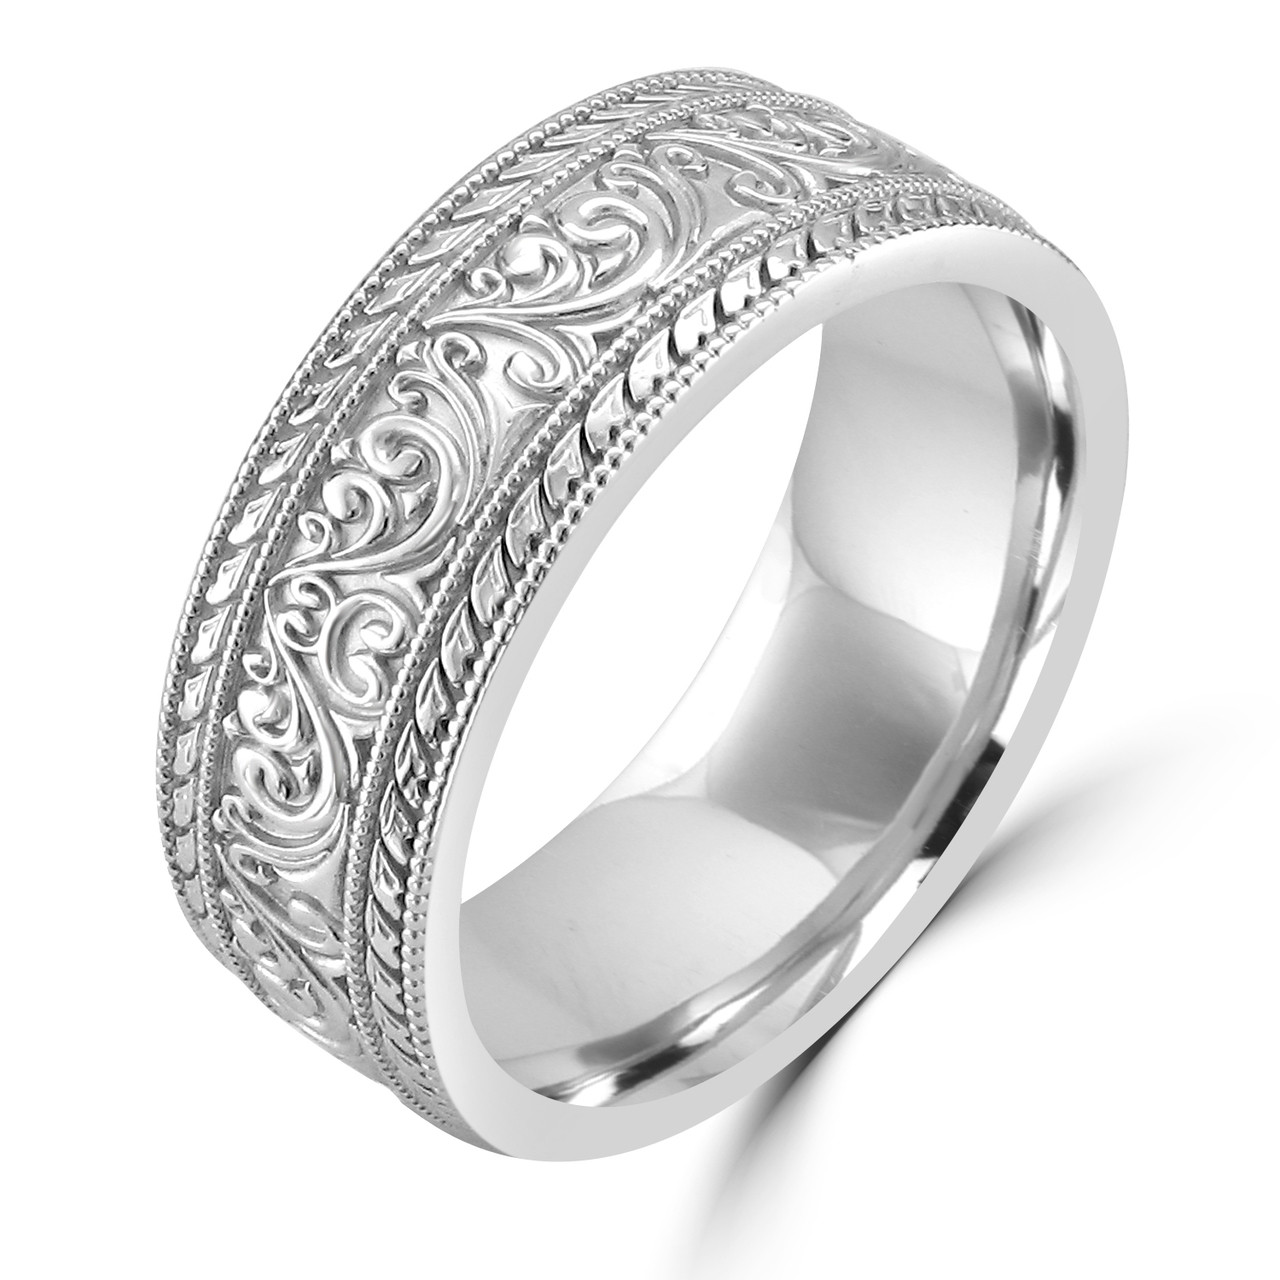 White And Gold Wedding: 14K White Gold Unique Art Nouveau Carved Wedding Band